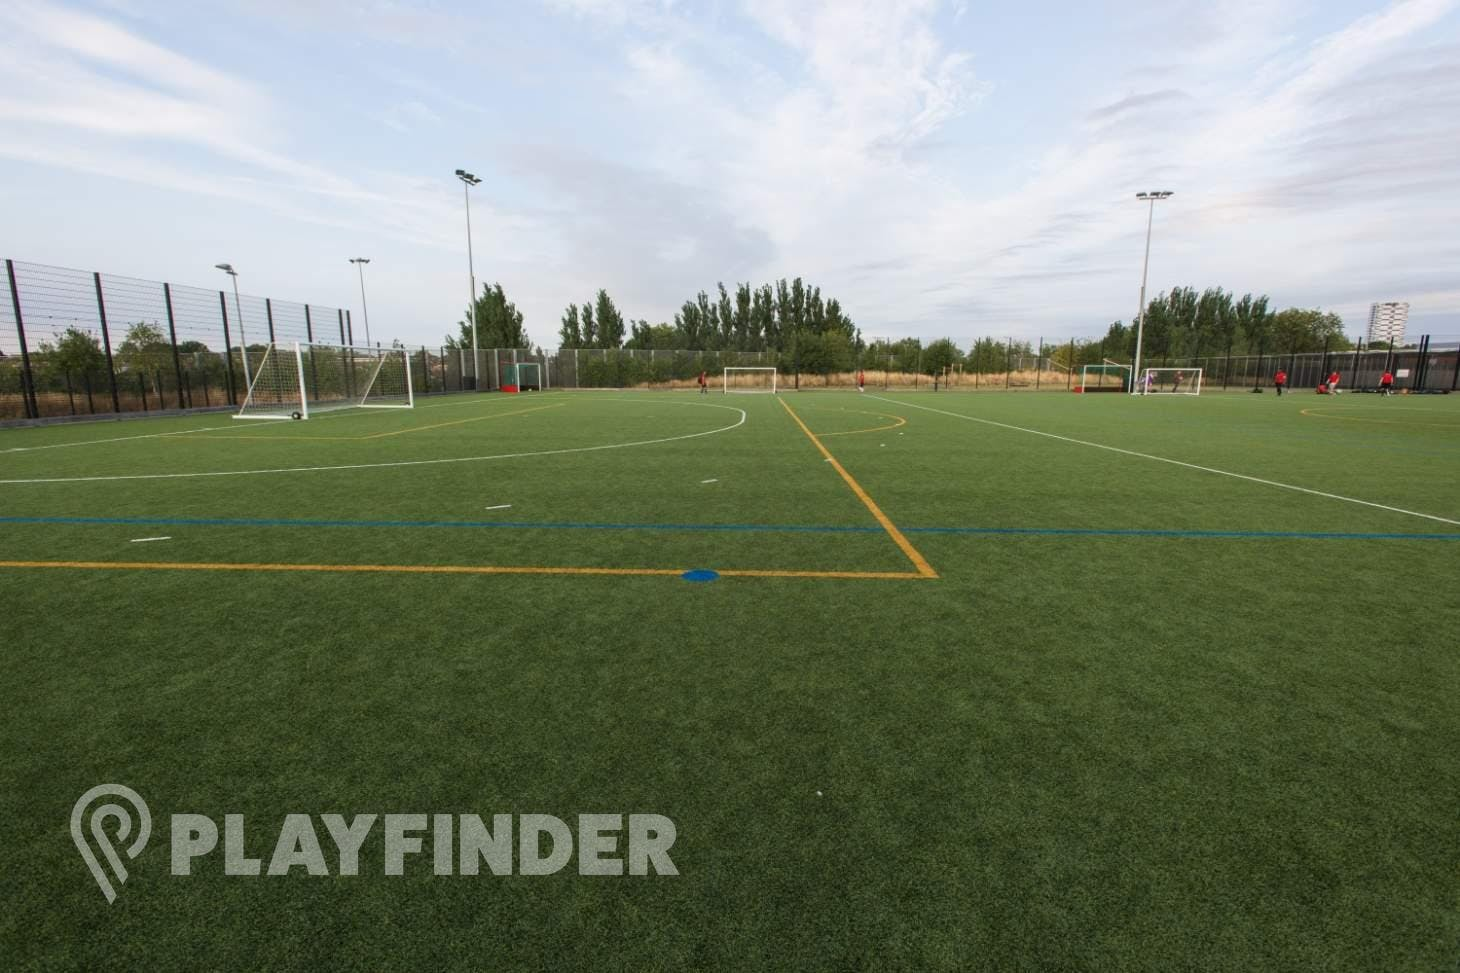 Chobham Academy Training pitch | 3G Astroturf rugby pitch